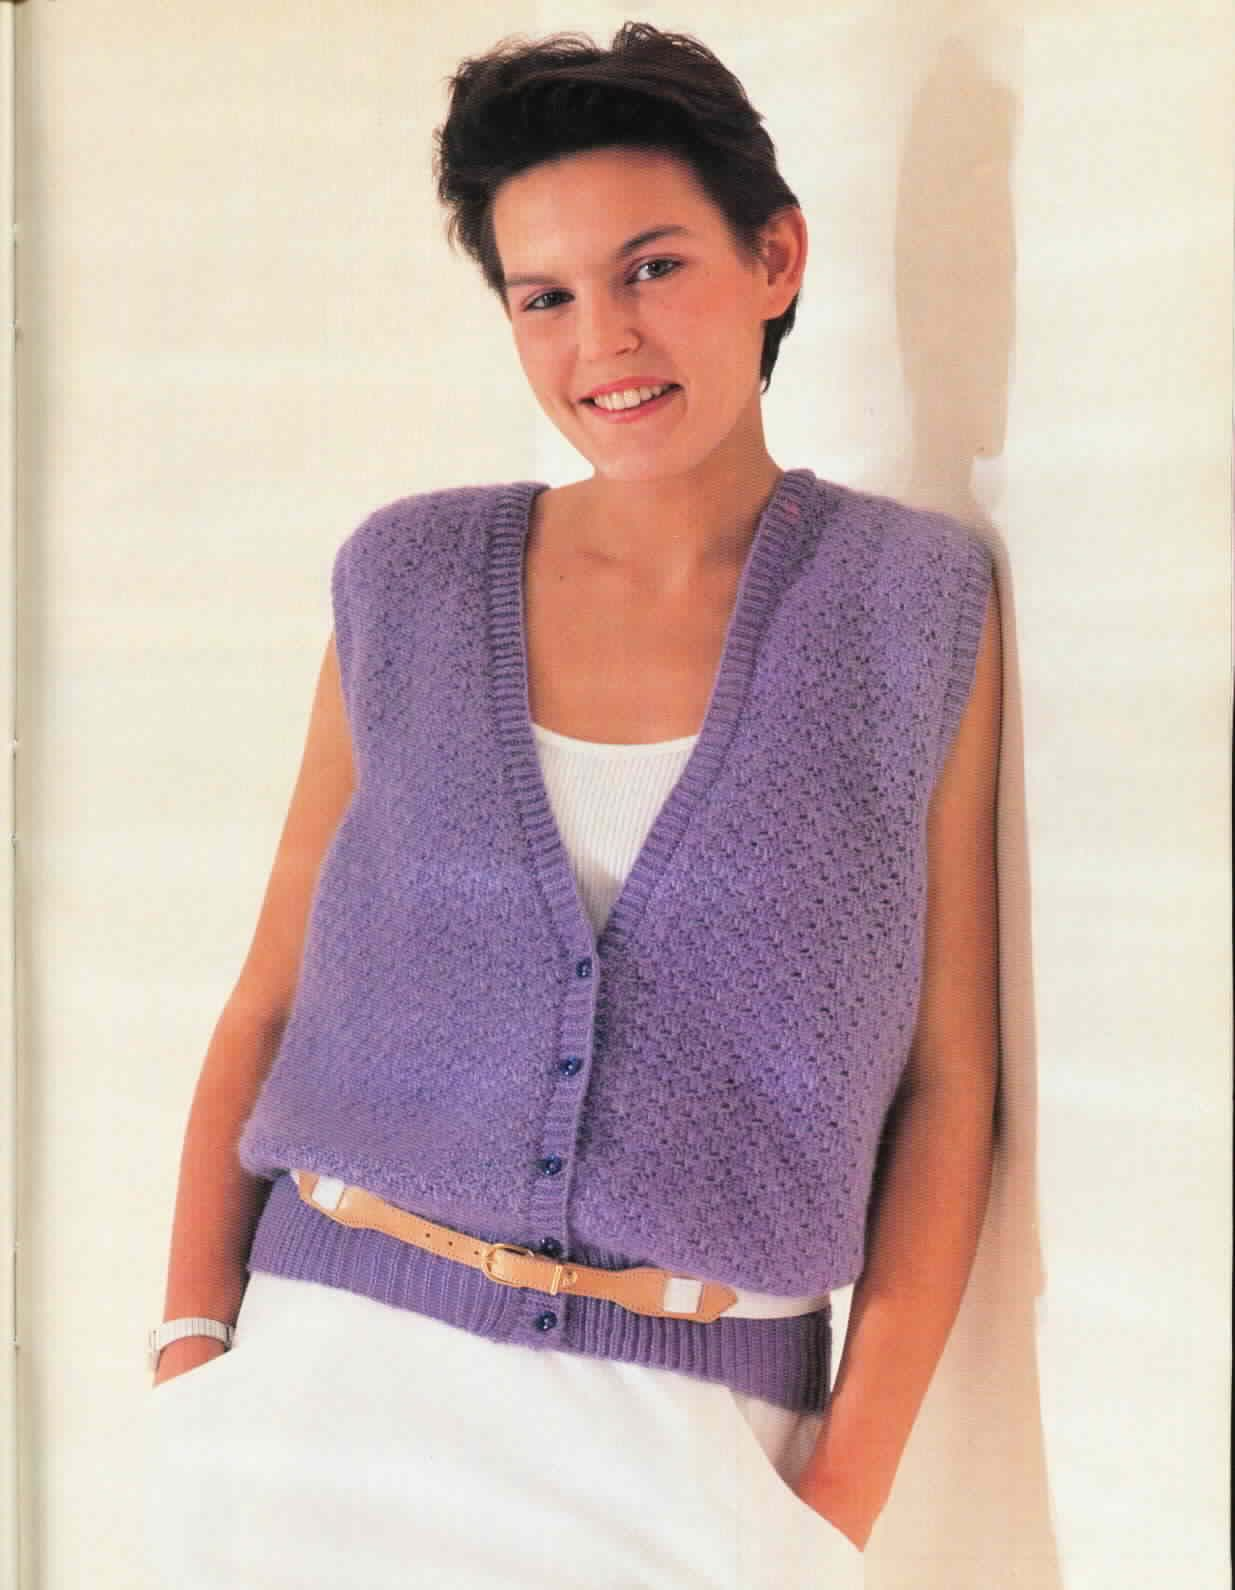 Crochet vest patterns google search crochet vests find this pin and more on crochet vests free crochet patterns bankloansurffo Images